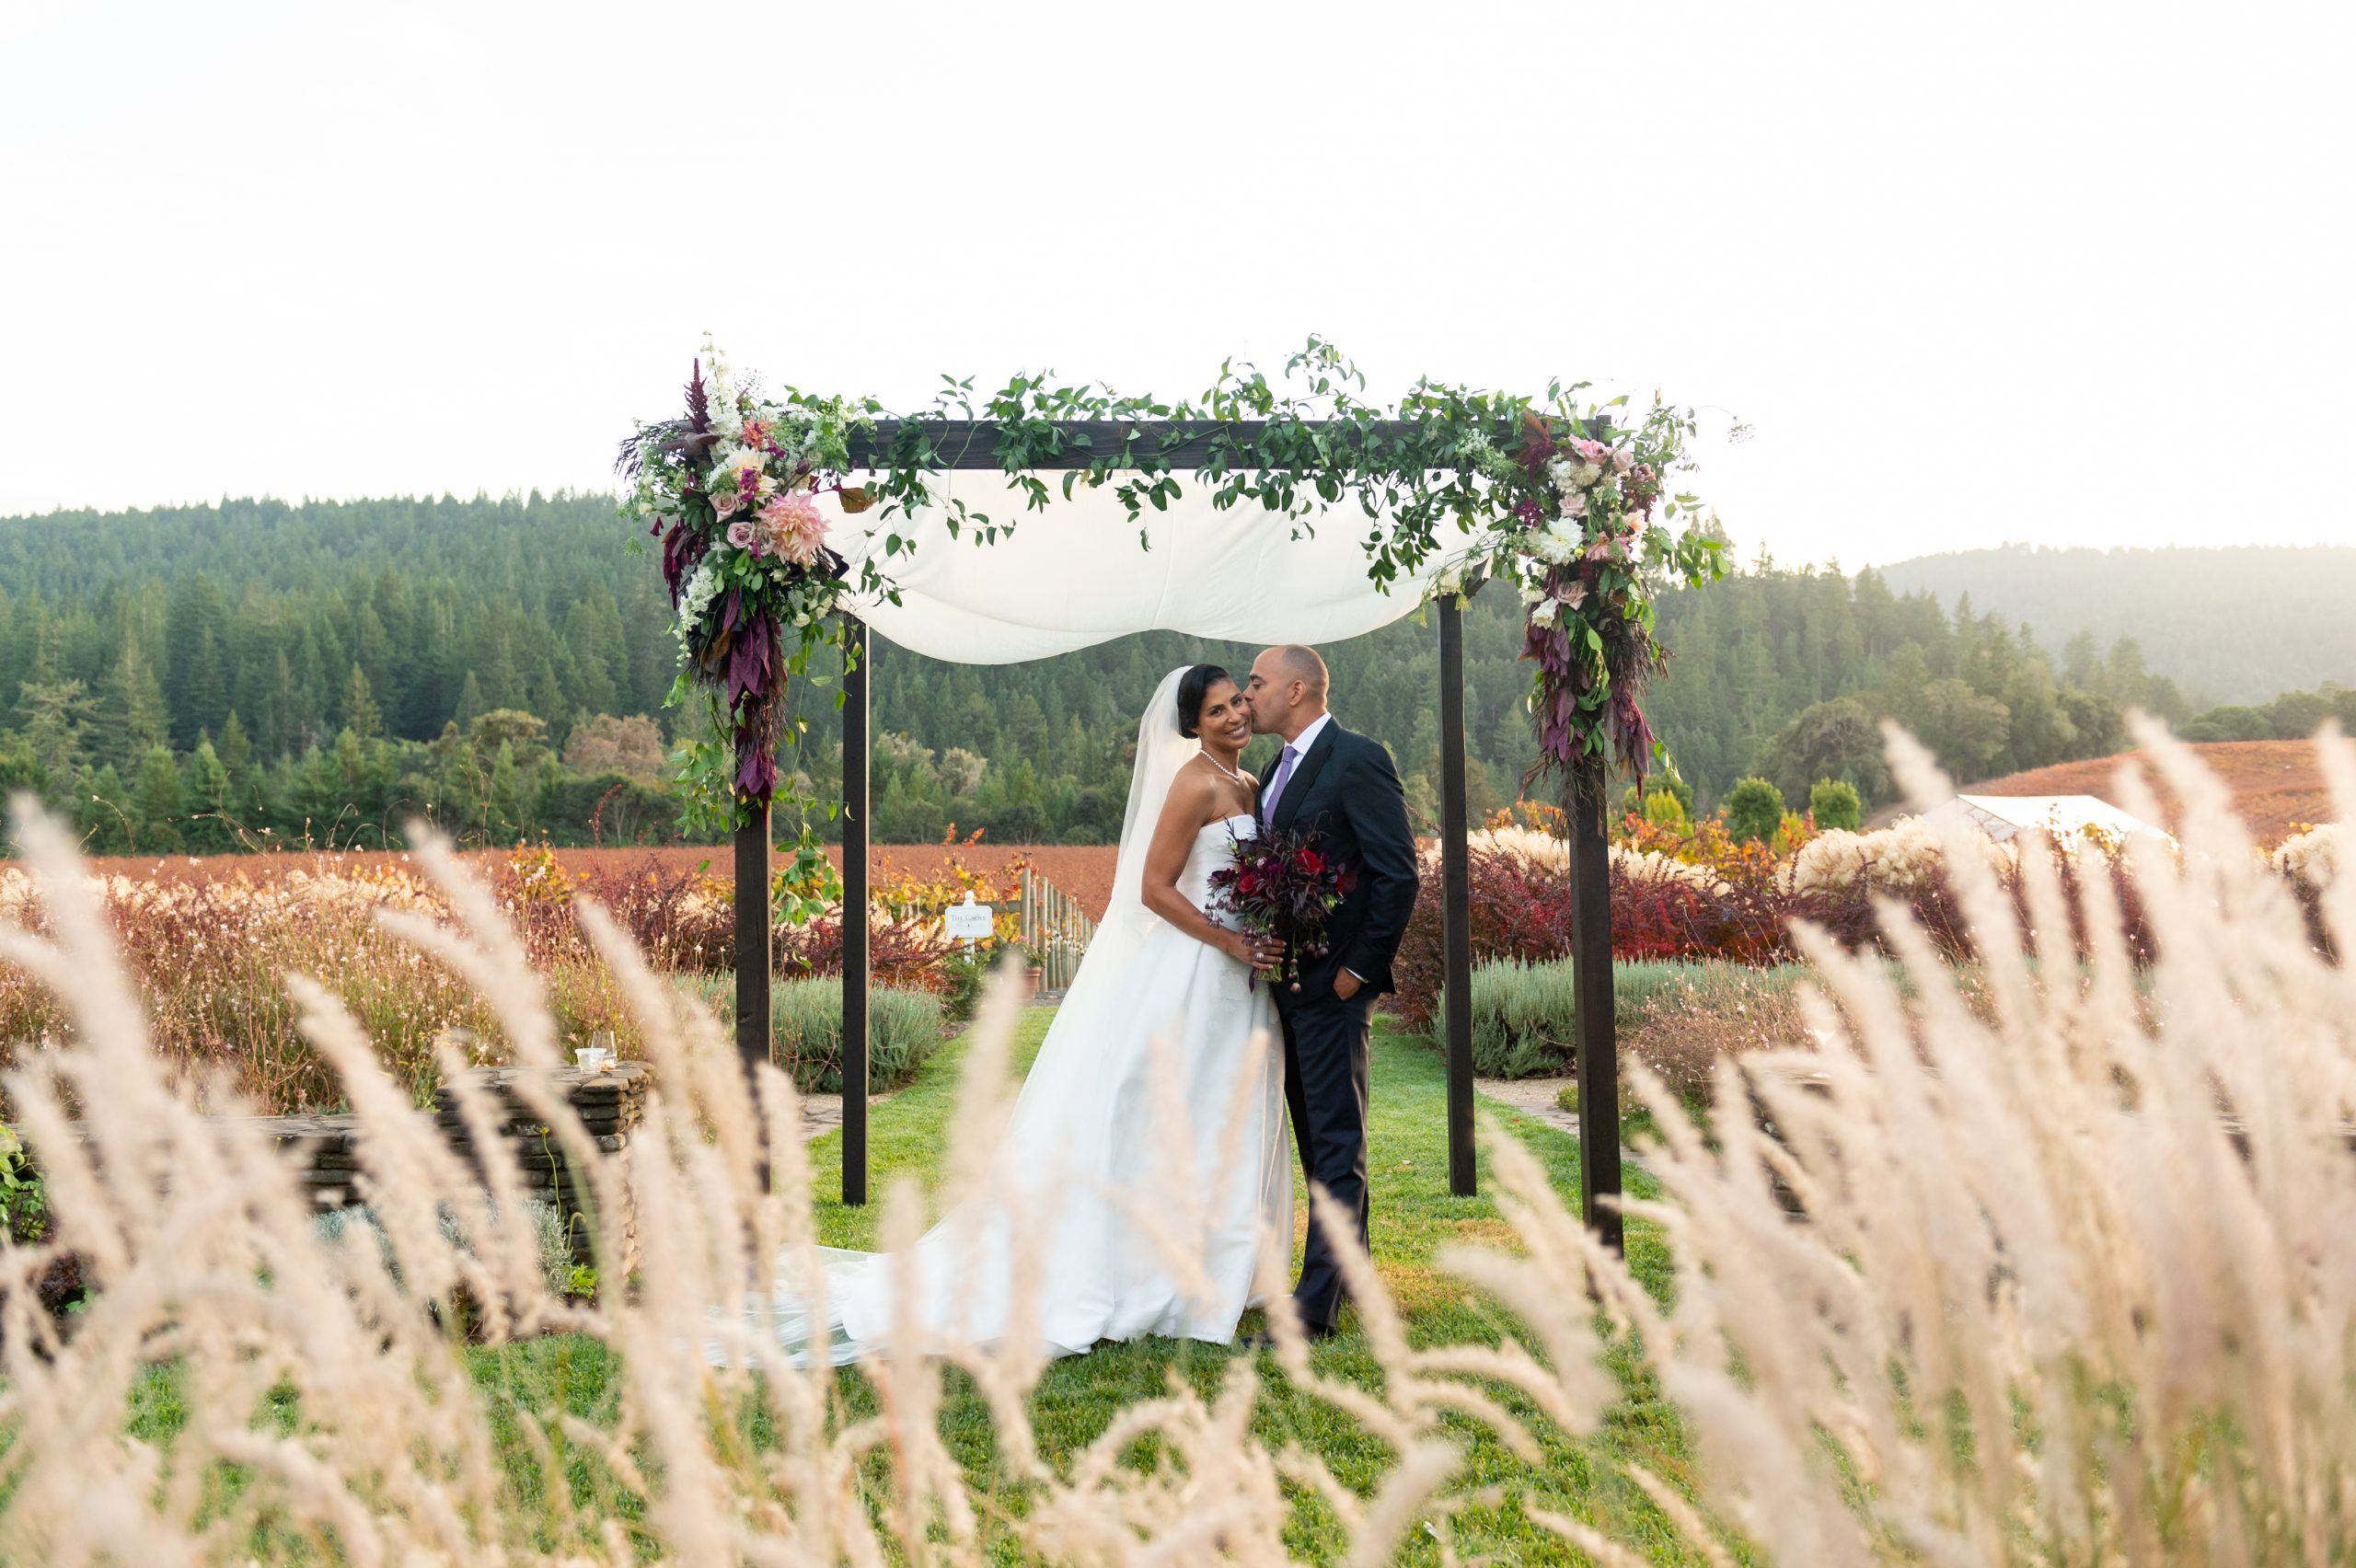 leah and david at golden eye winery wedding by chloe jackman photography